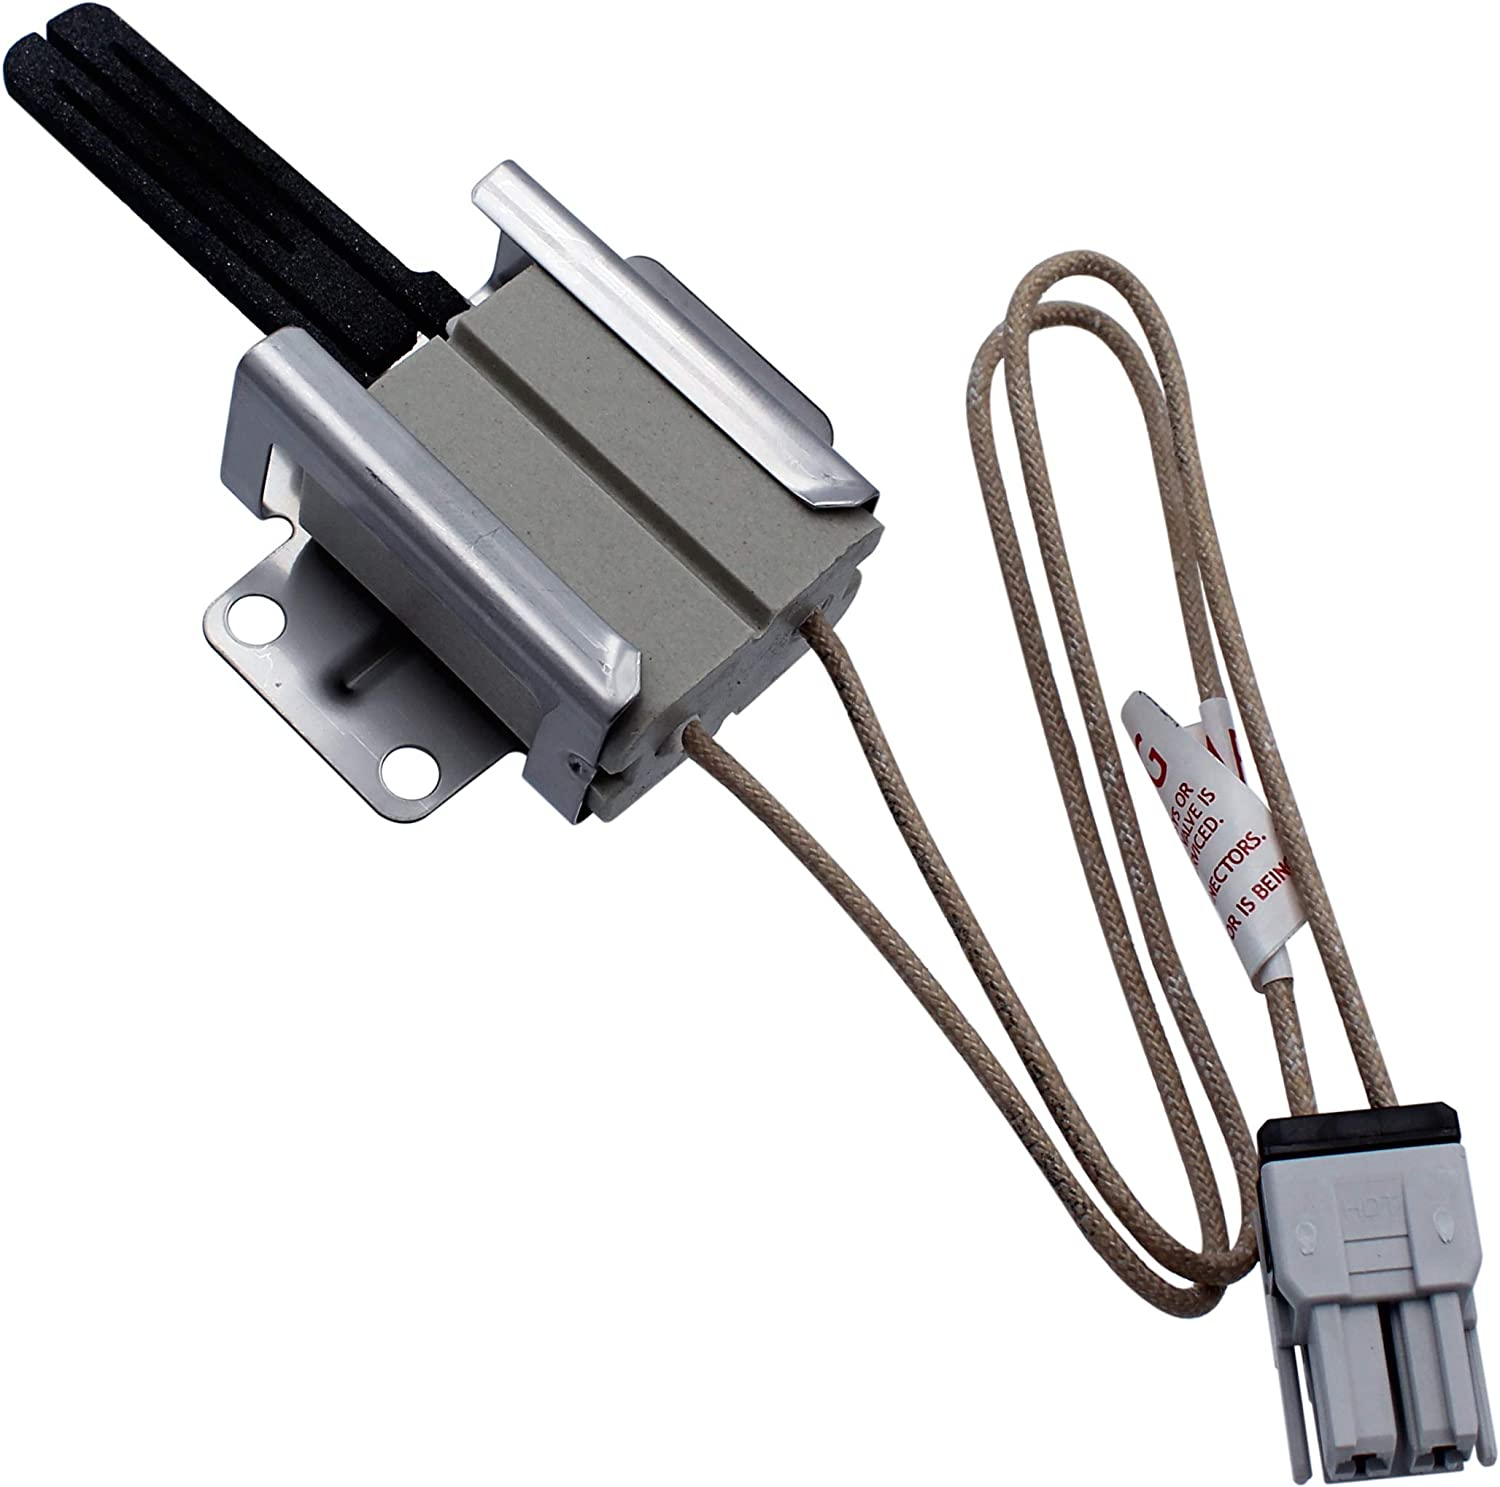 Supplying Demand WB13X25500 Oven Igniter Glowbar Compatible With GE Fits 223C3381G029 PS11726670